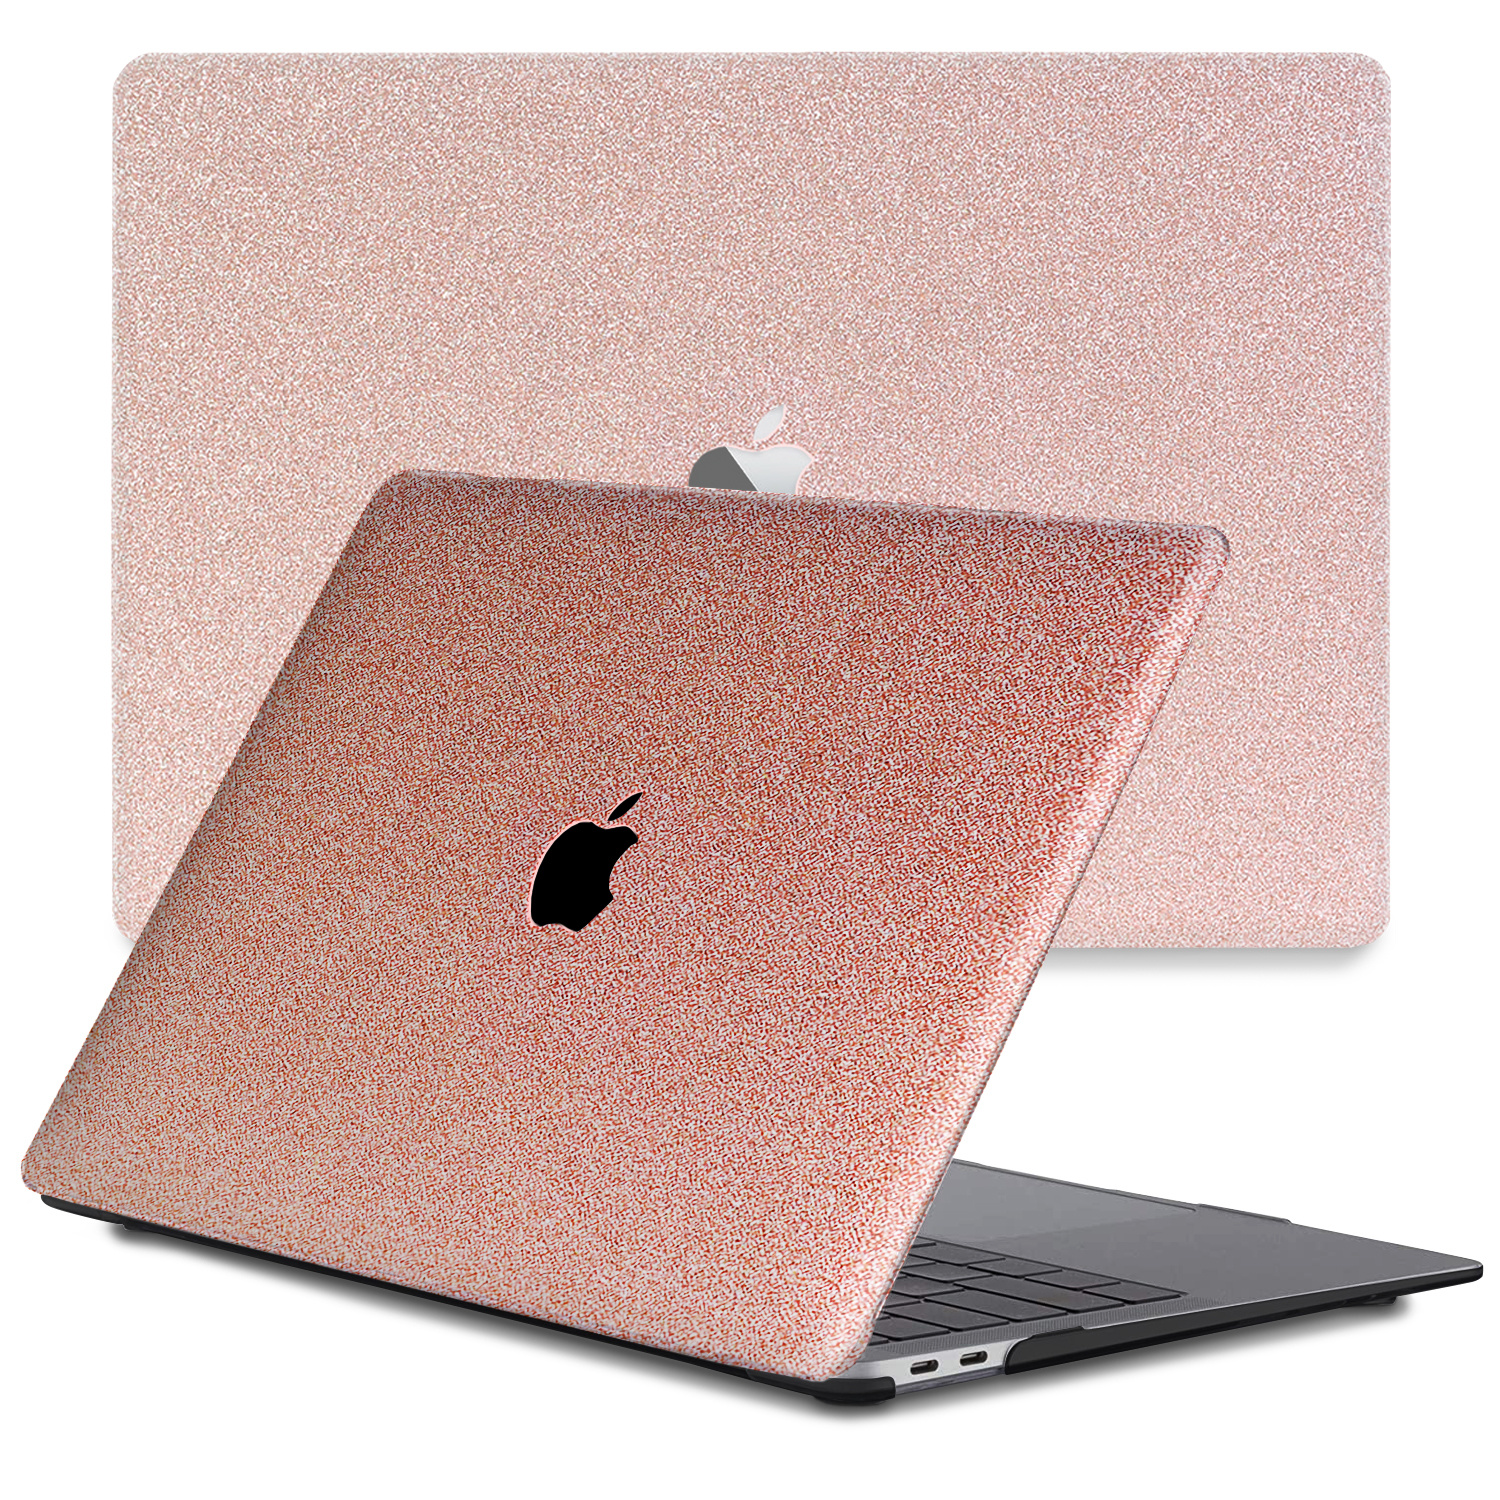 Lunso Glitter Rose Goud cover hoes voor de MacBook Air 13 inch (2020)